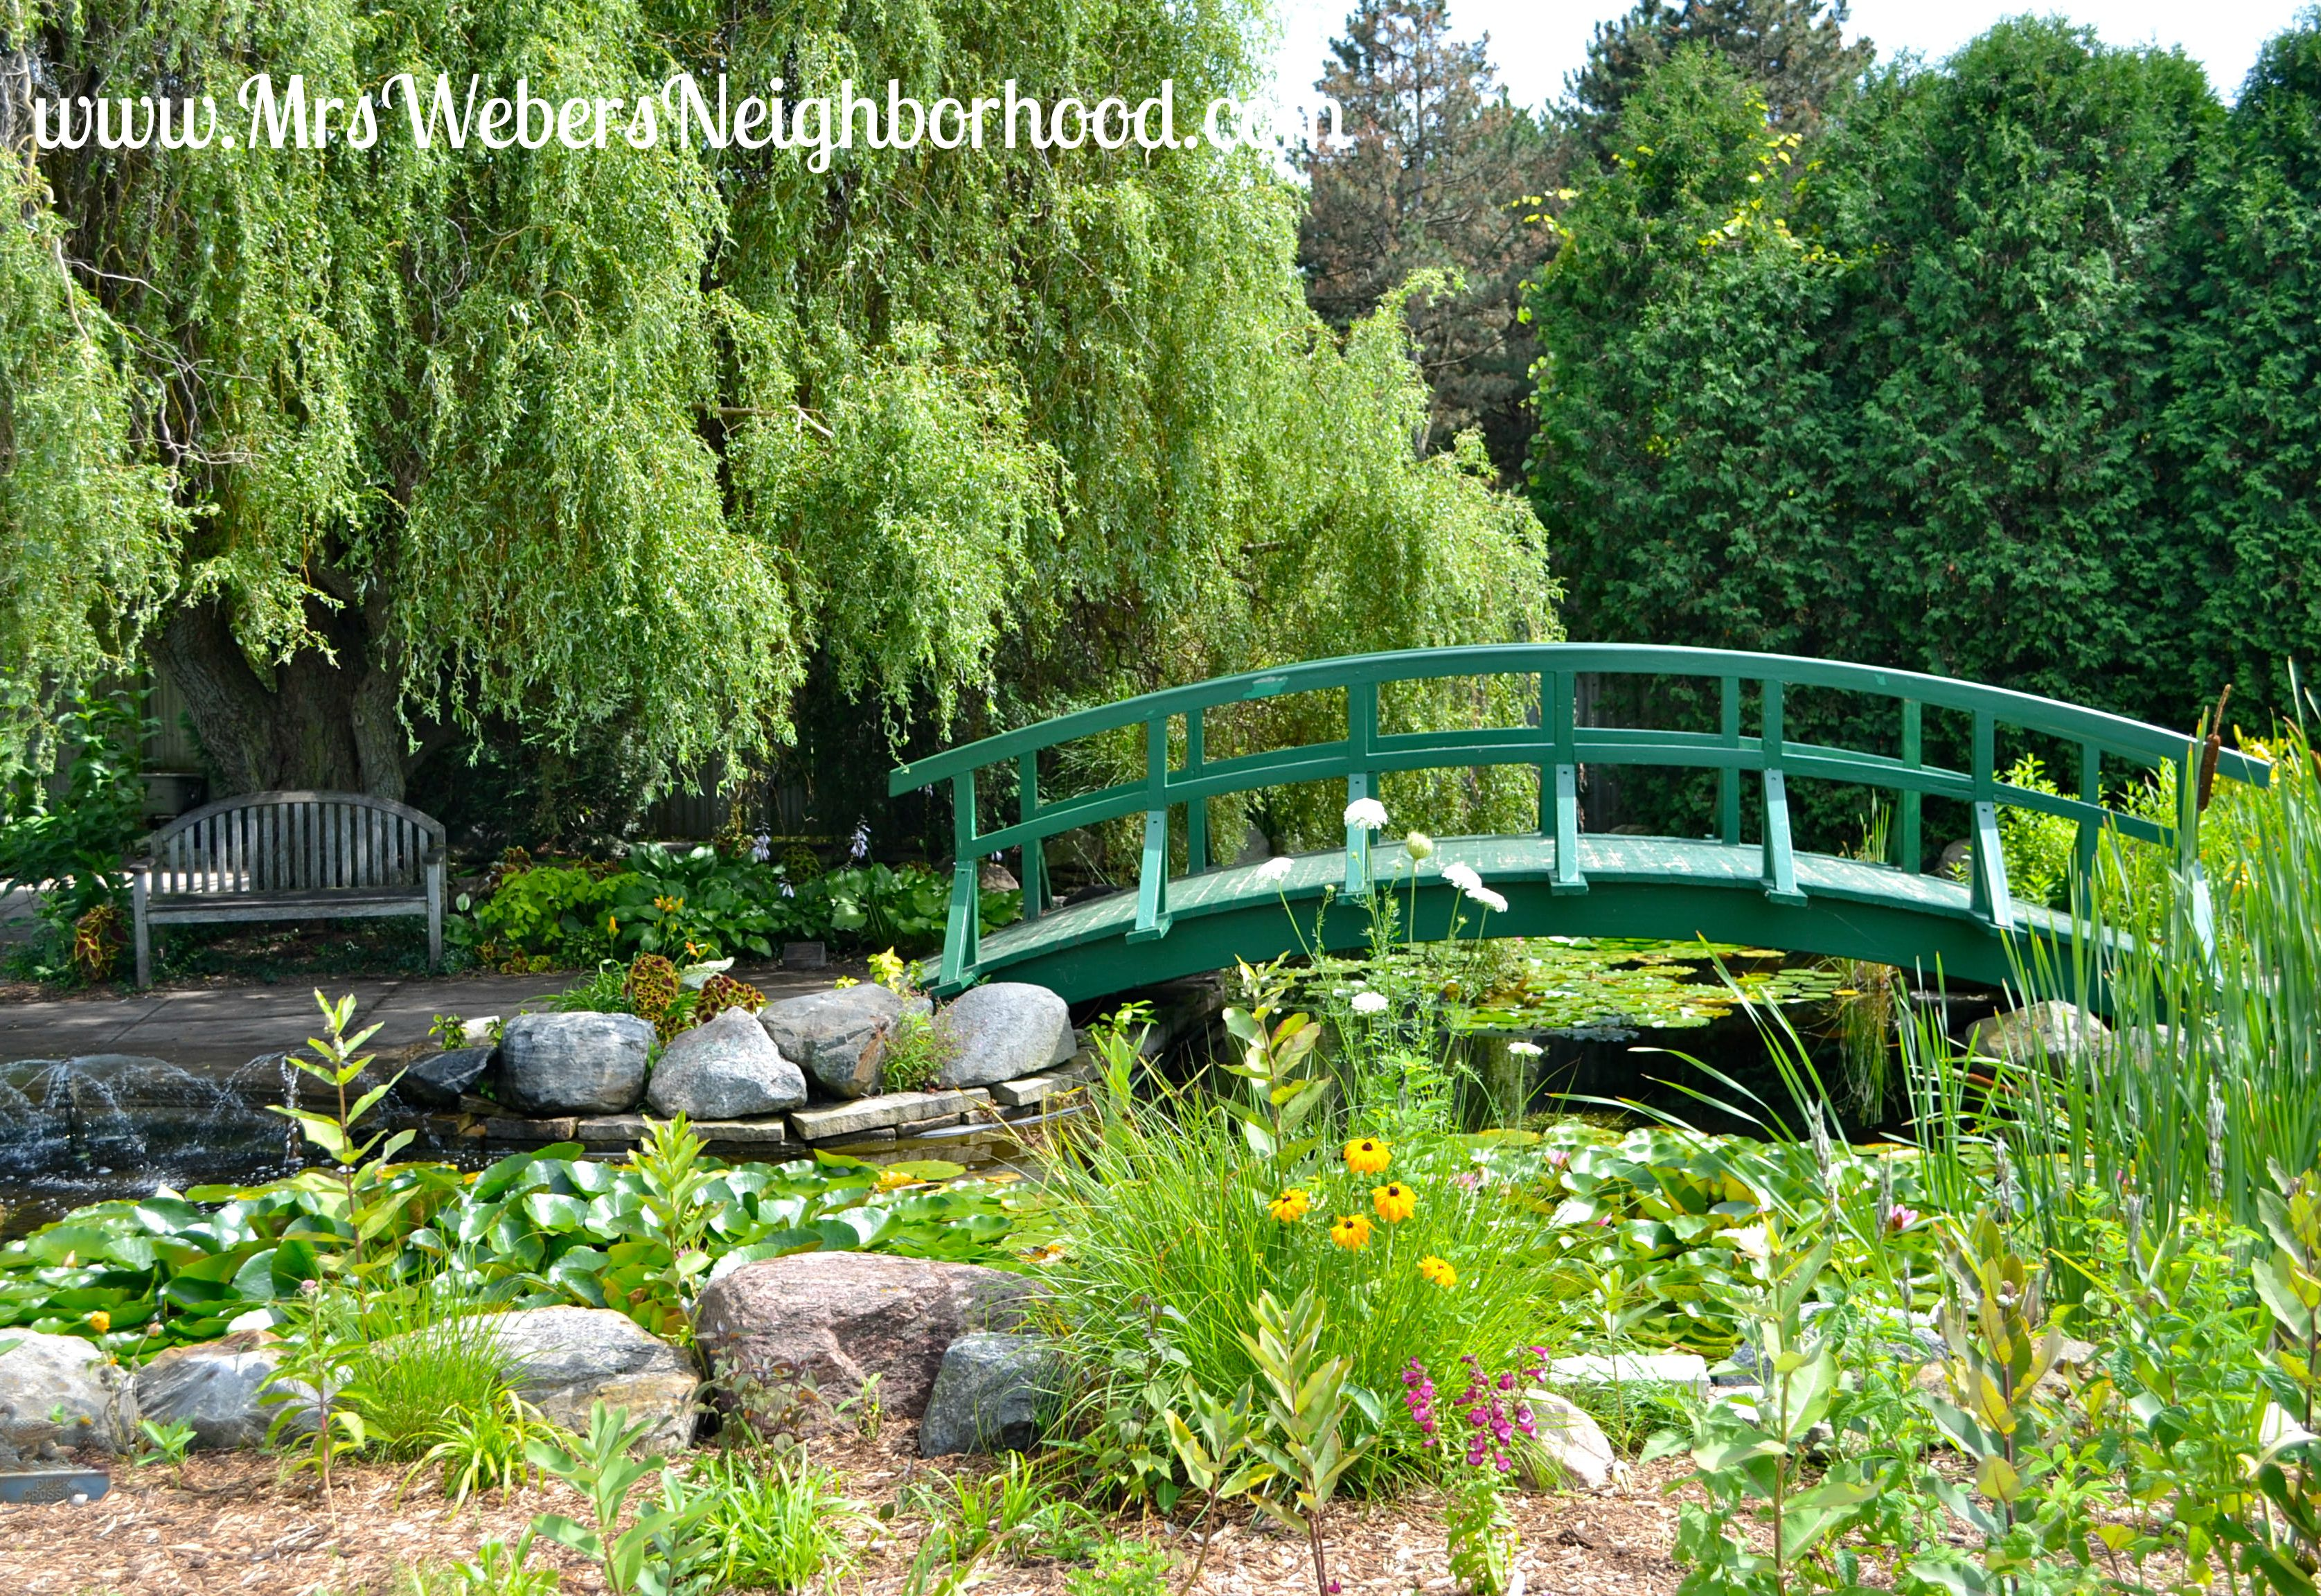 13 things to do in greater lansing with kids mrs weber 39 s neighborhood